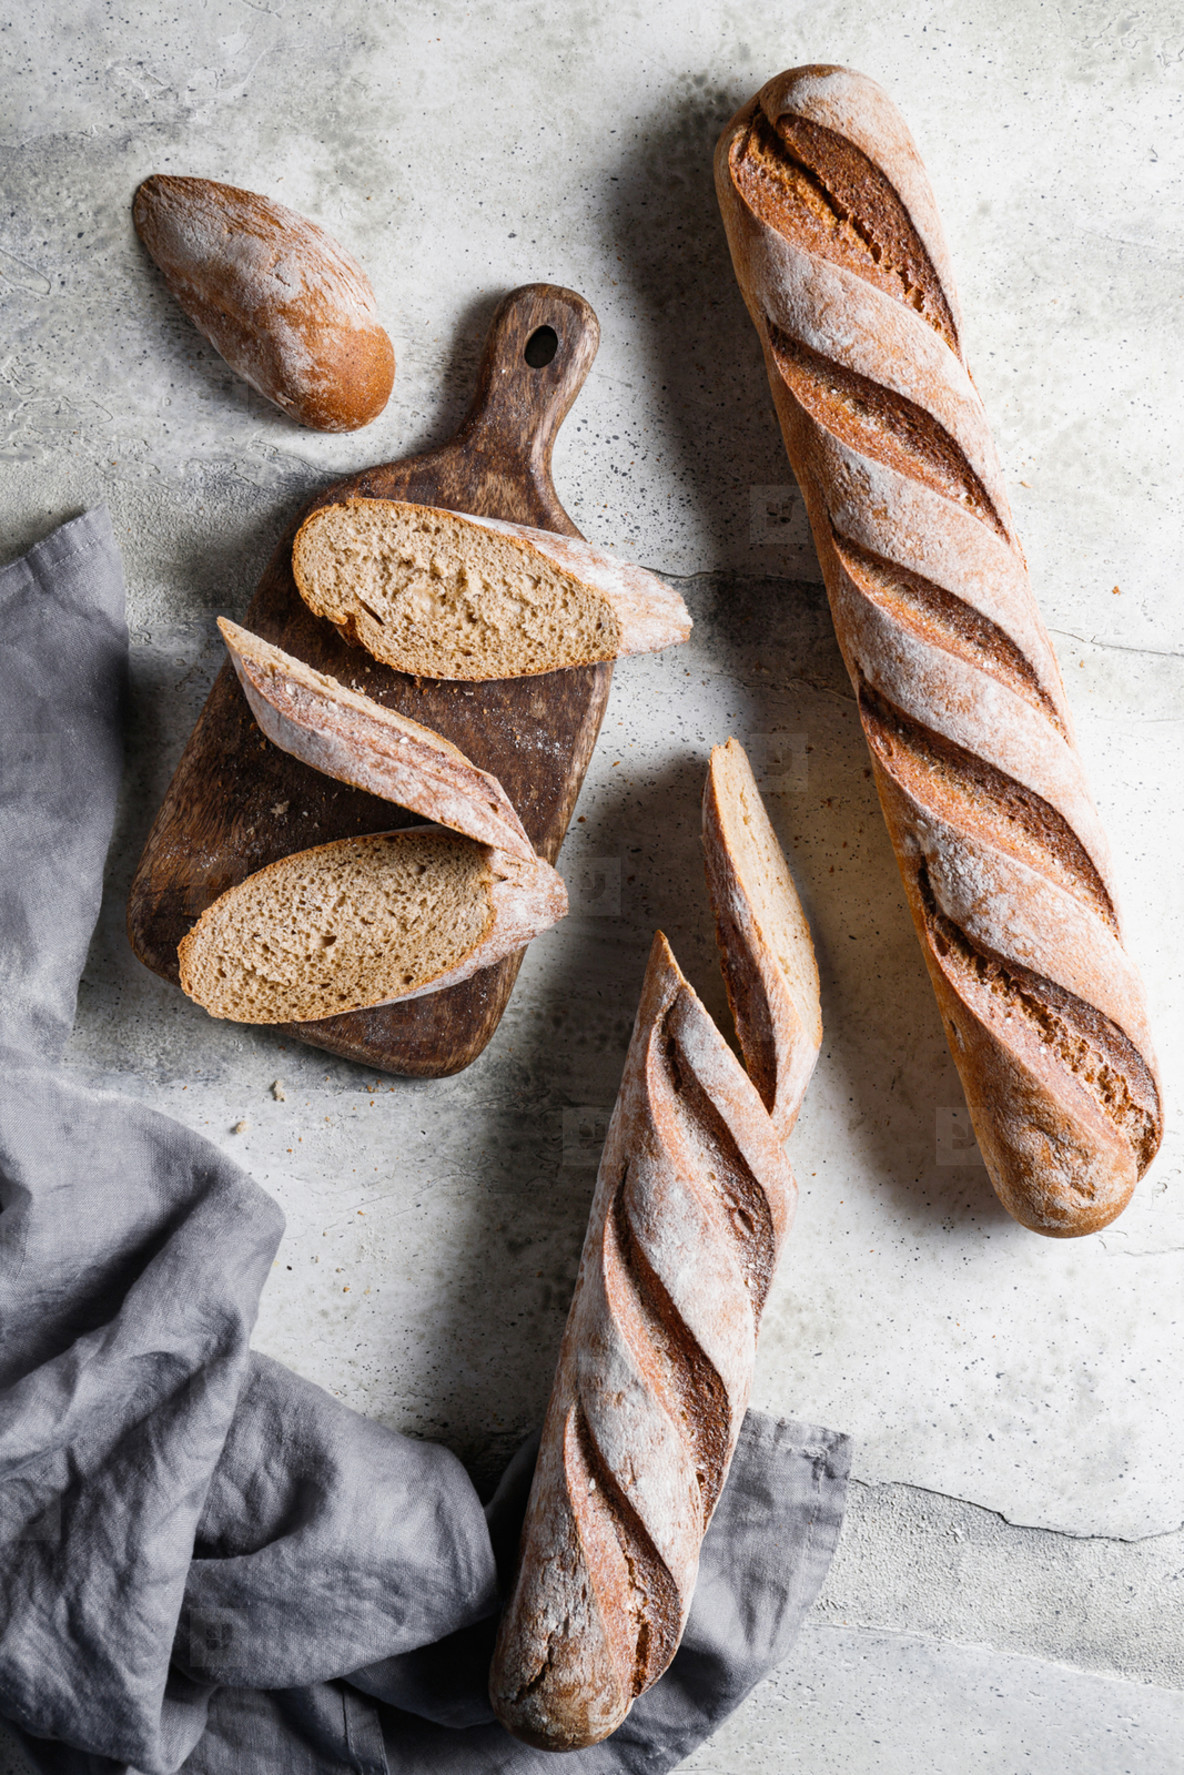 Top view of two brown baguettes on a concrete background